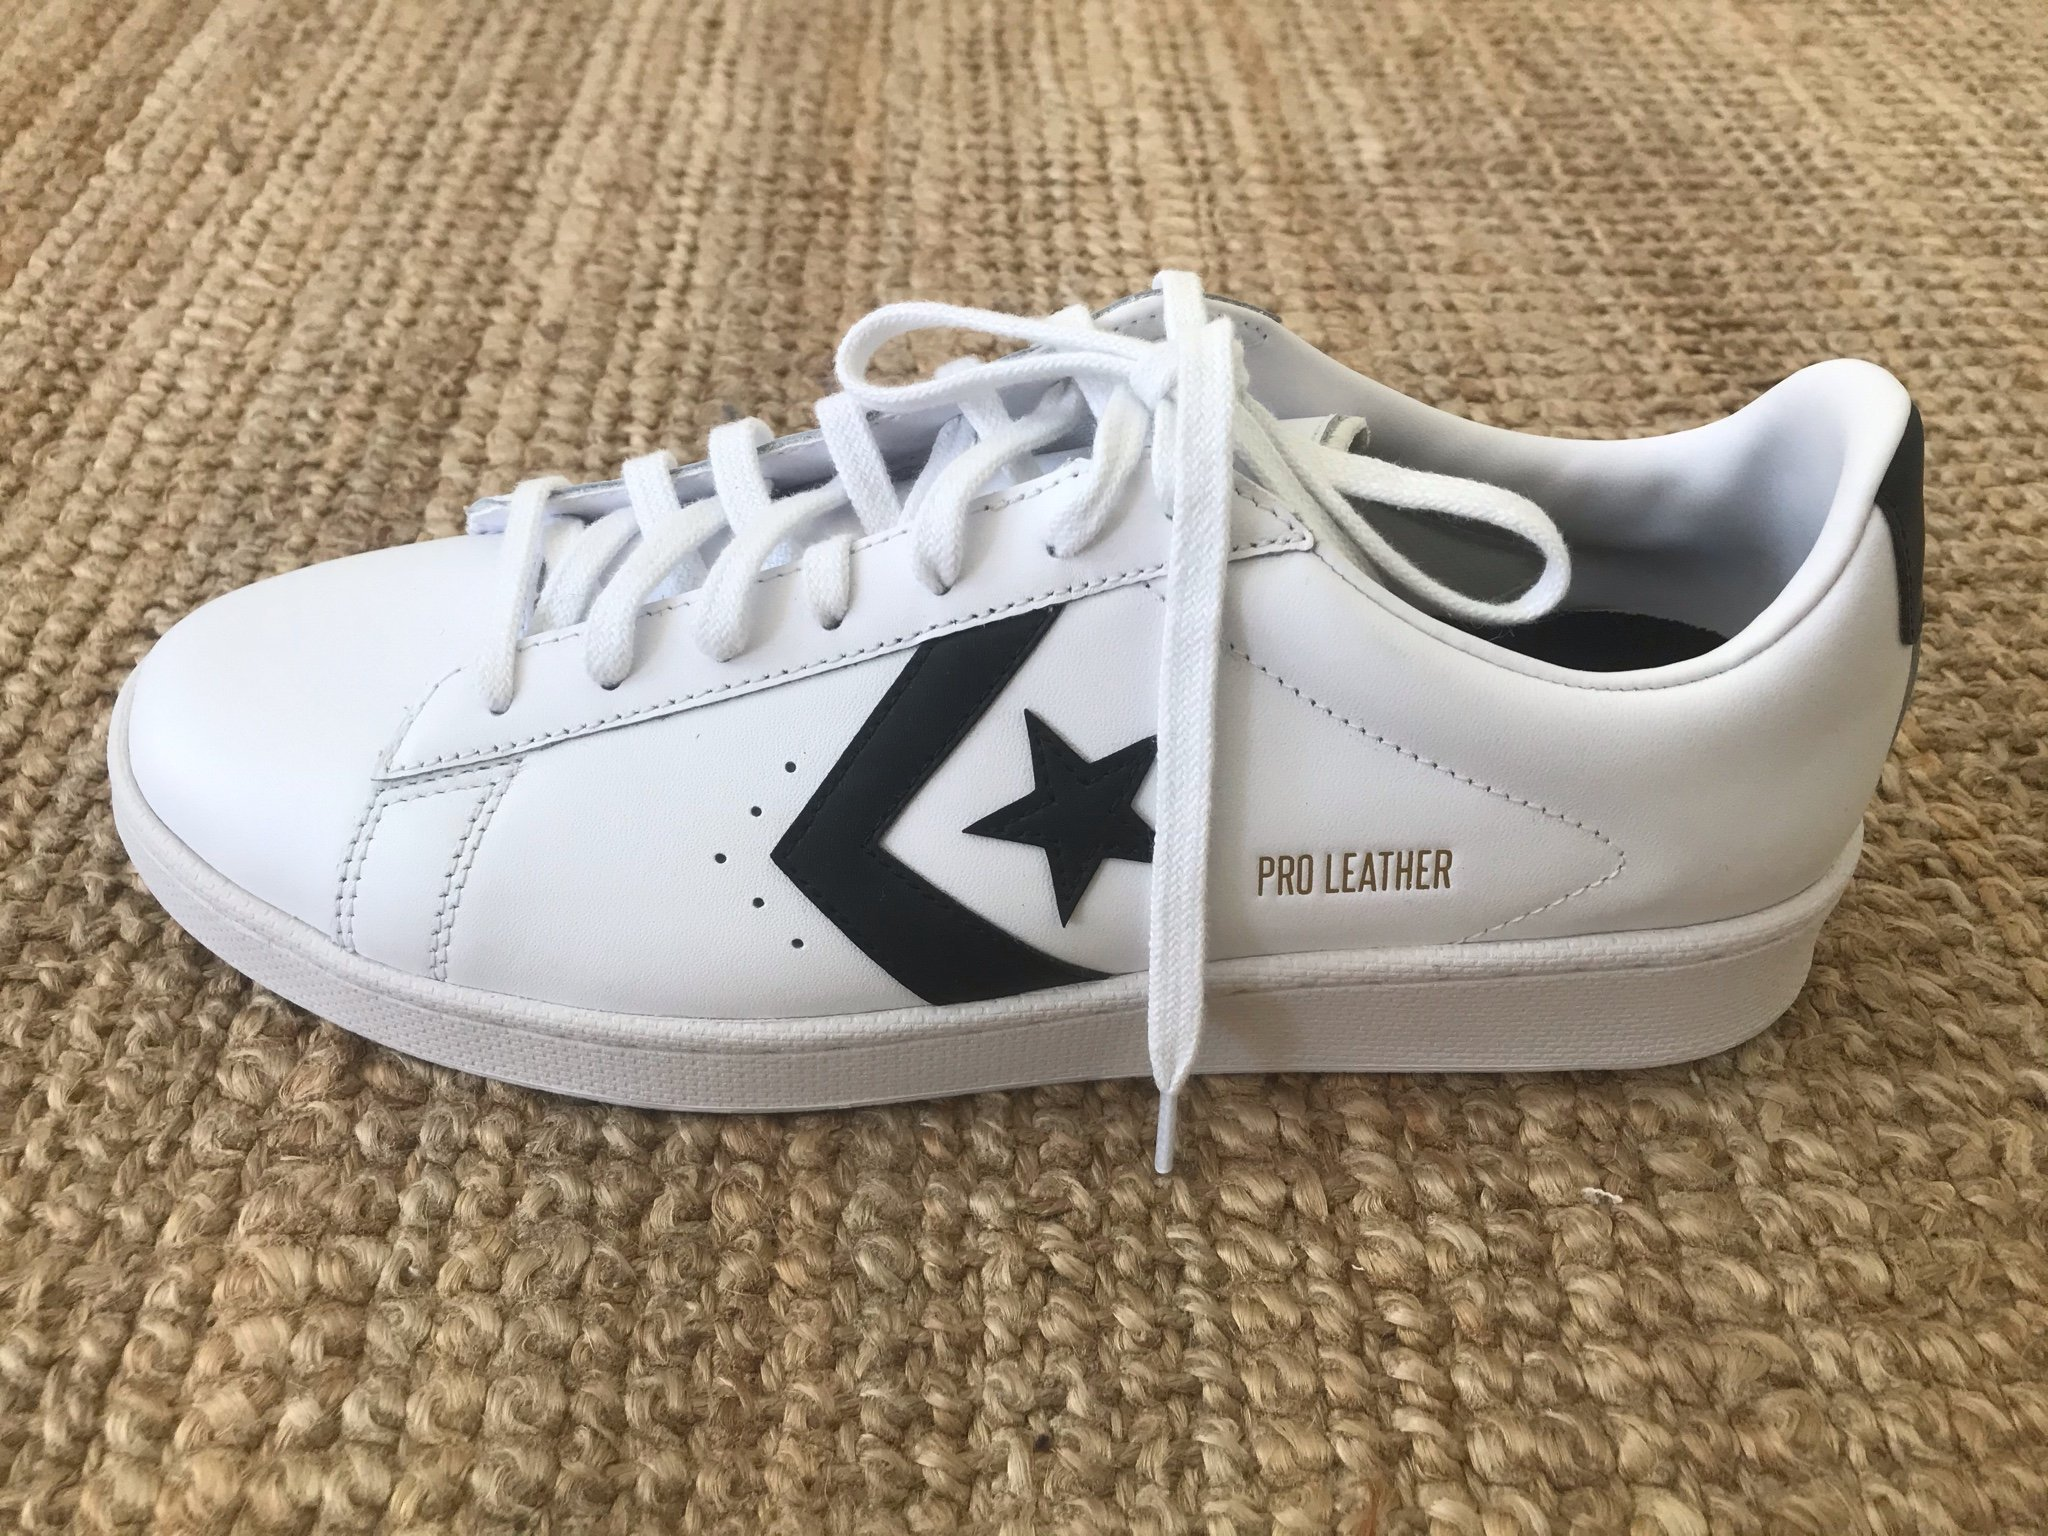 Nya Converse Pro leather sneakers, unisex